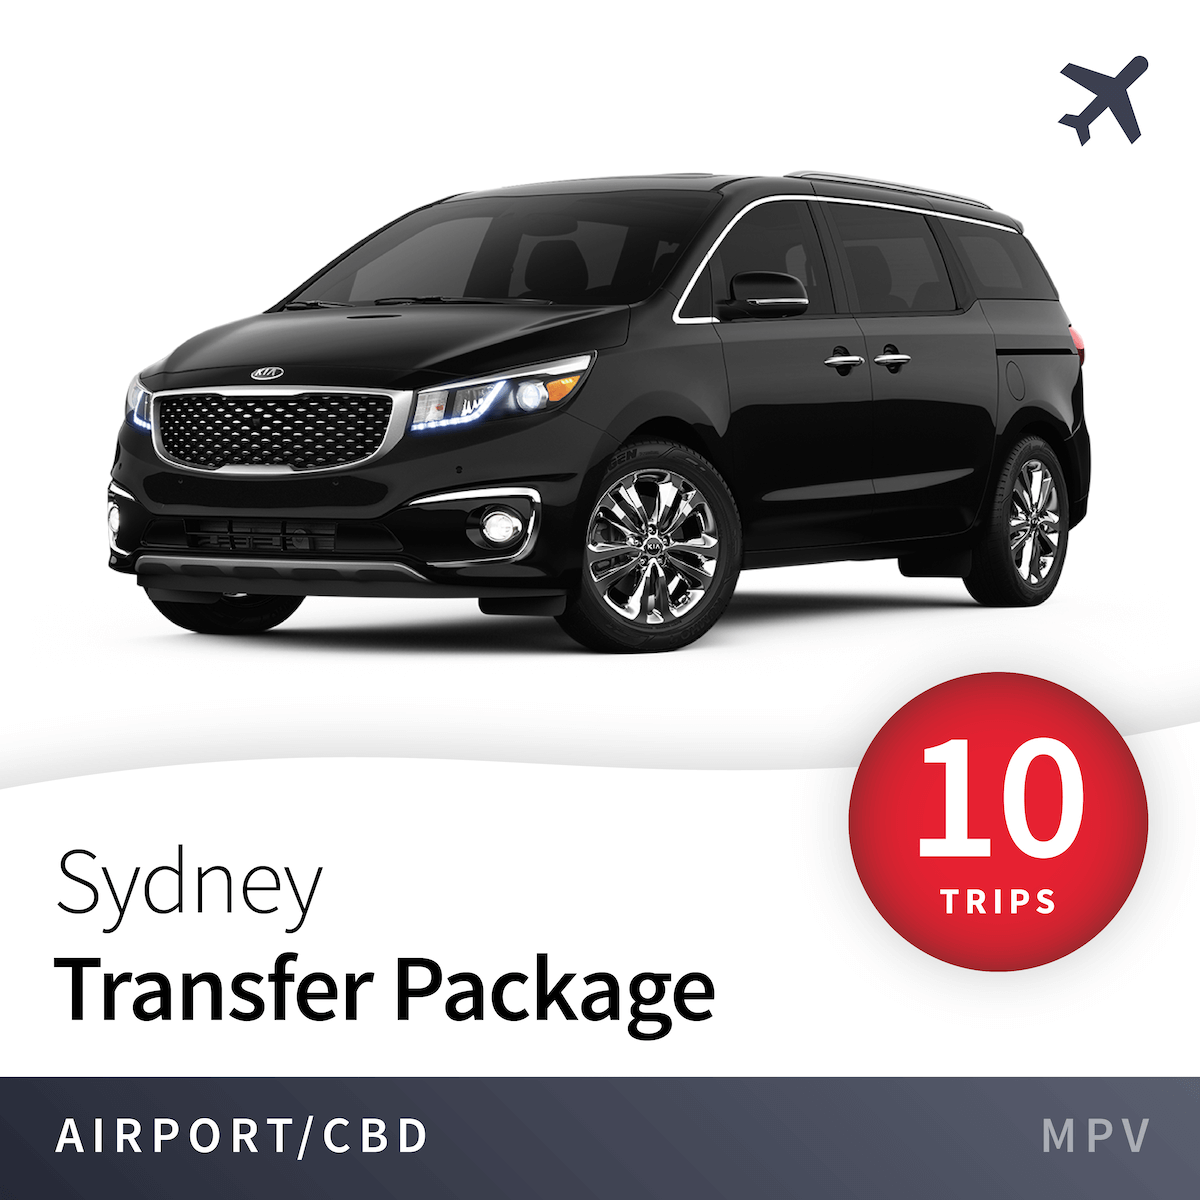 Sydney Airport Transfer Package - MPV (10 Trips) 8